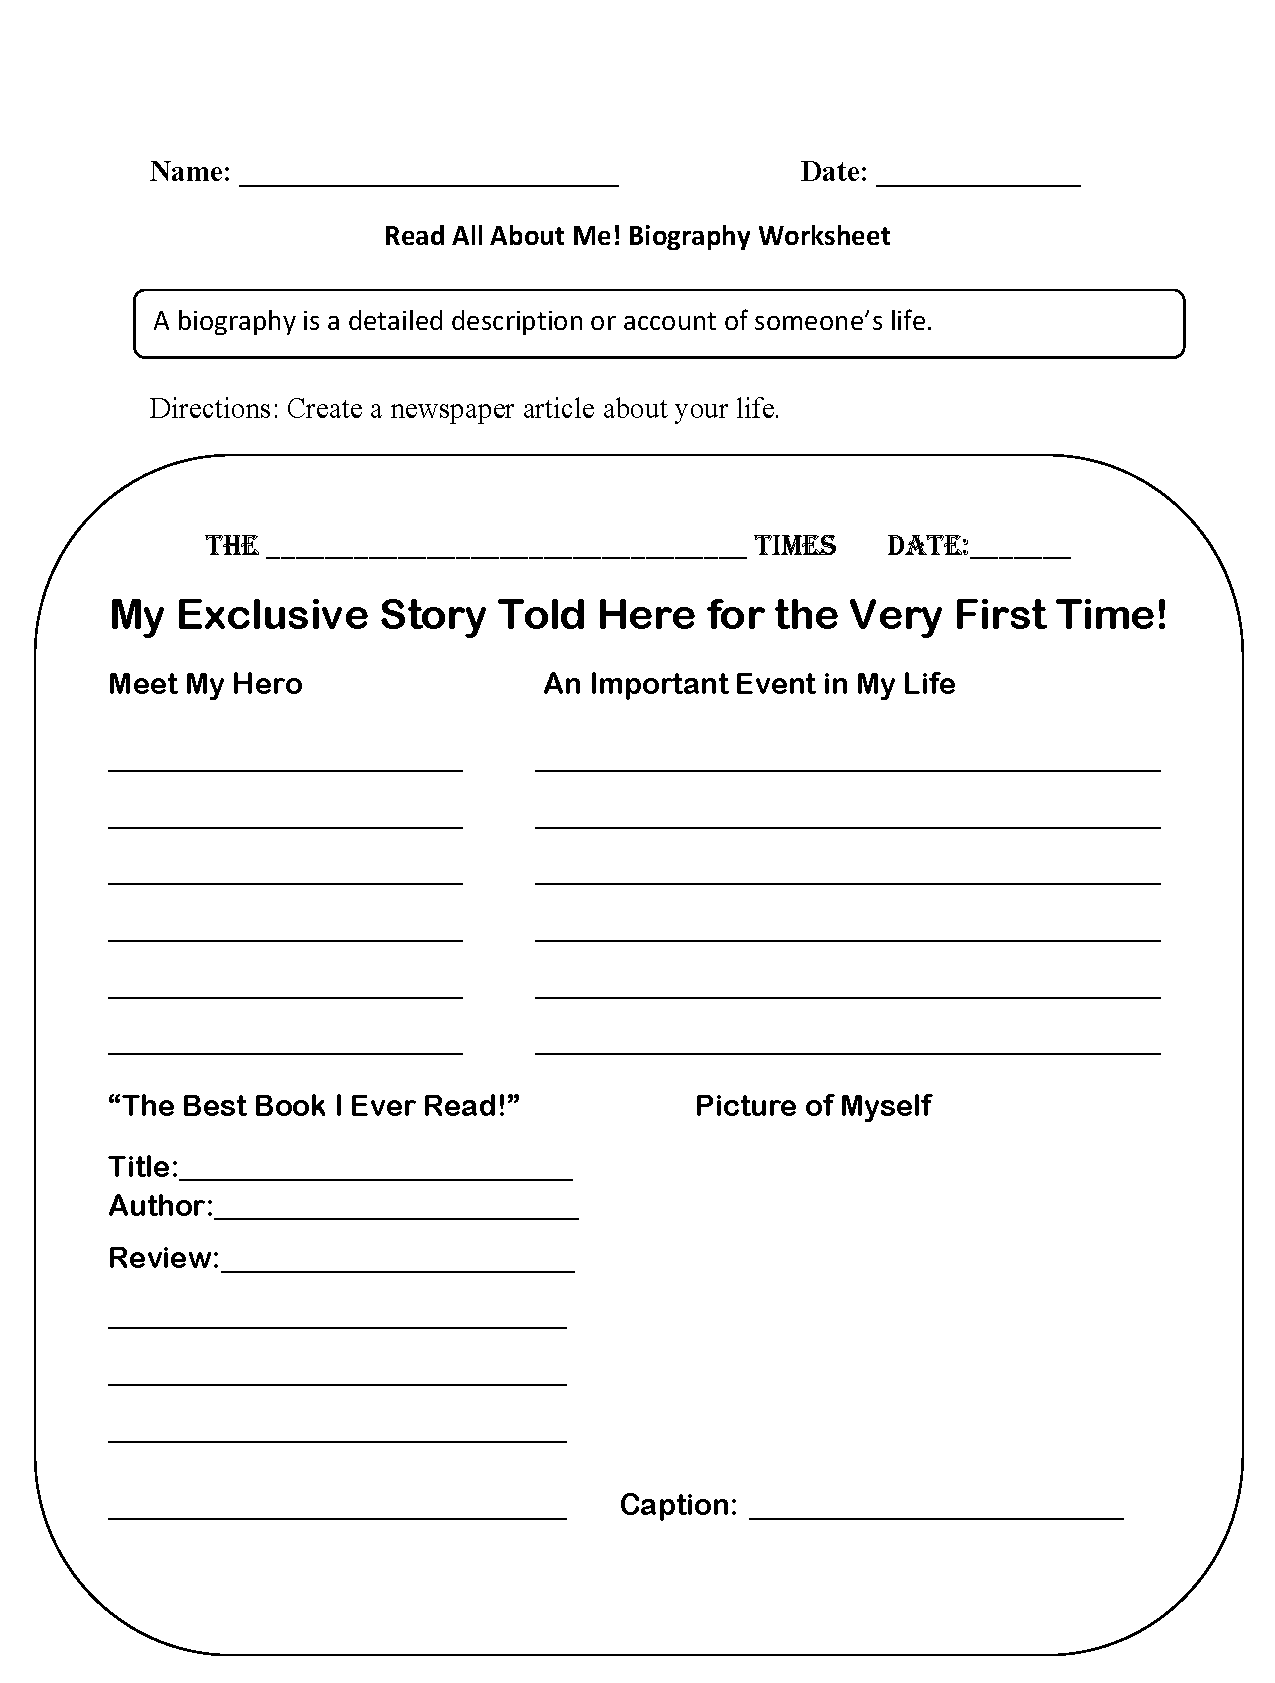 Read All About Me Back To School Worksheets | Homeschool